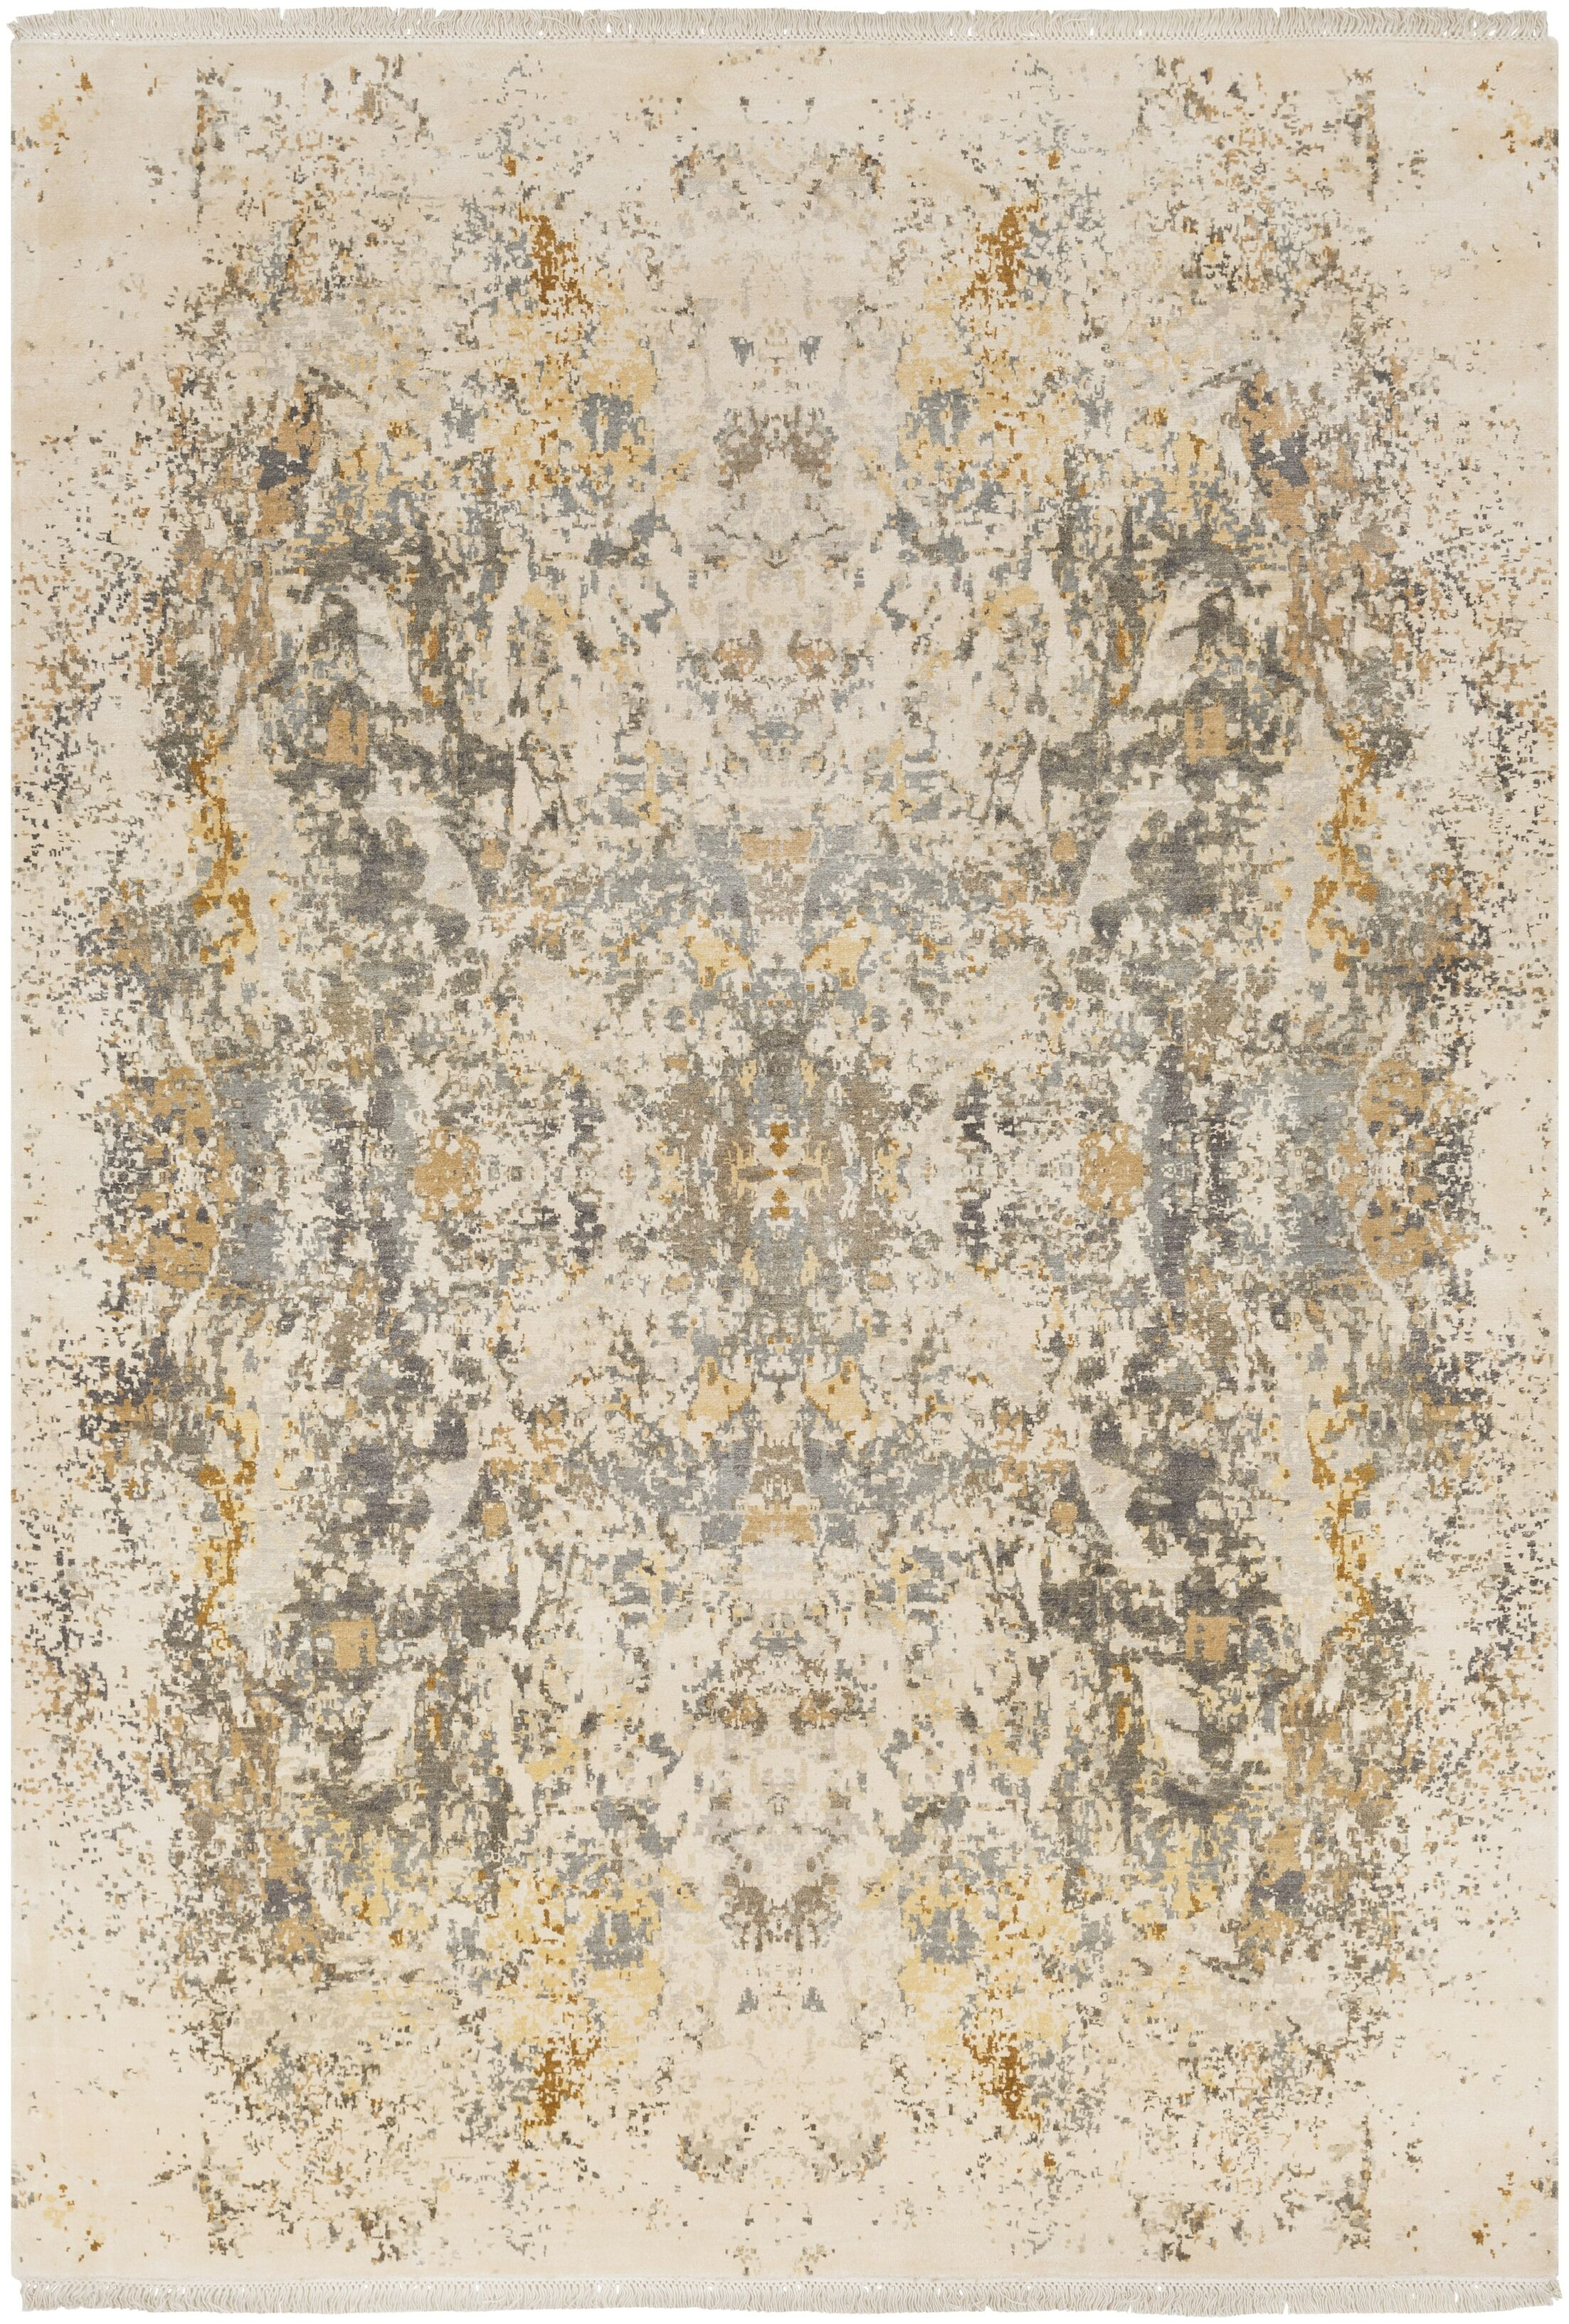 Daniella Hand-Knotted Medium Gray/Camel Area Rug Rug Size: Rectangle 9' x 13'